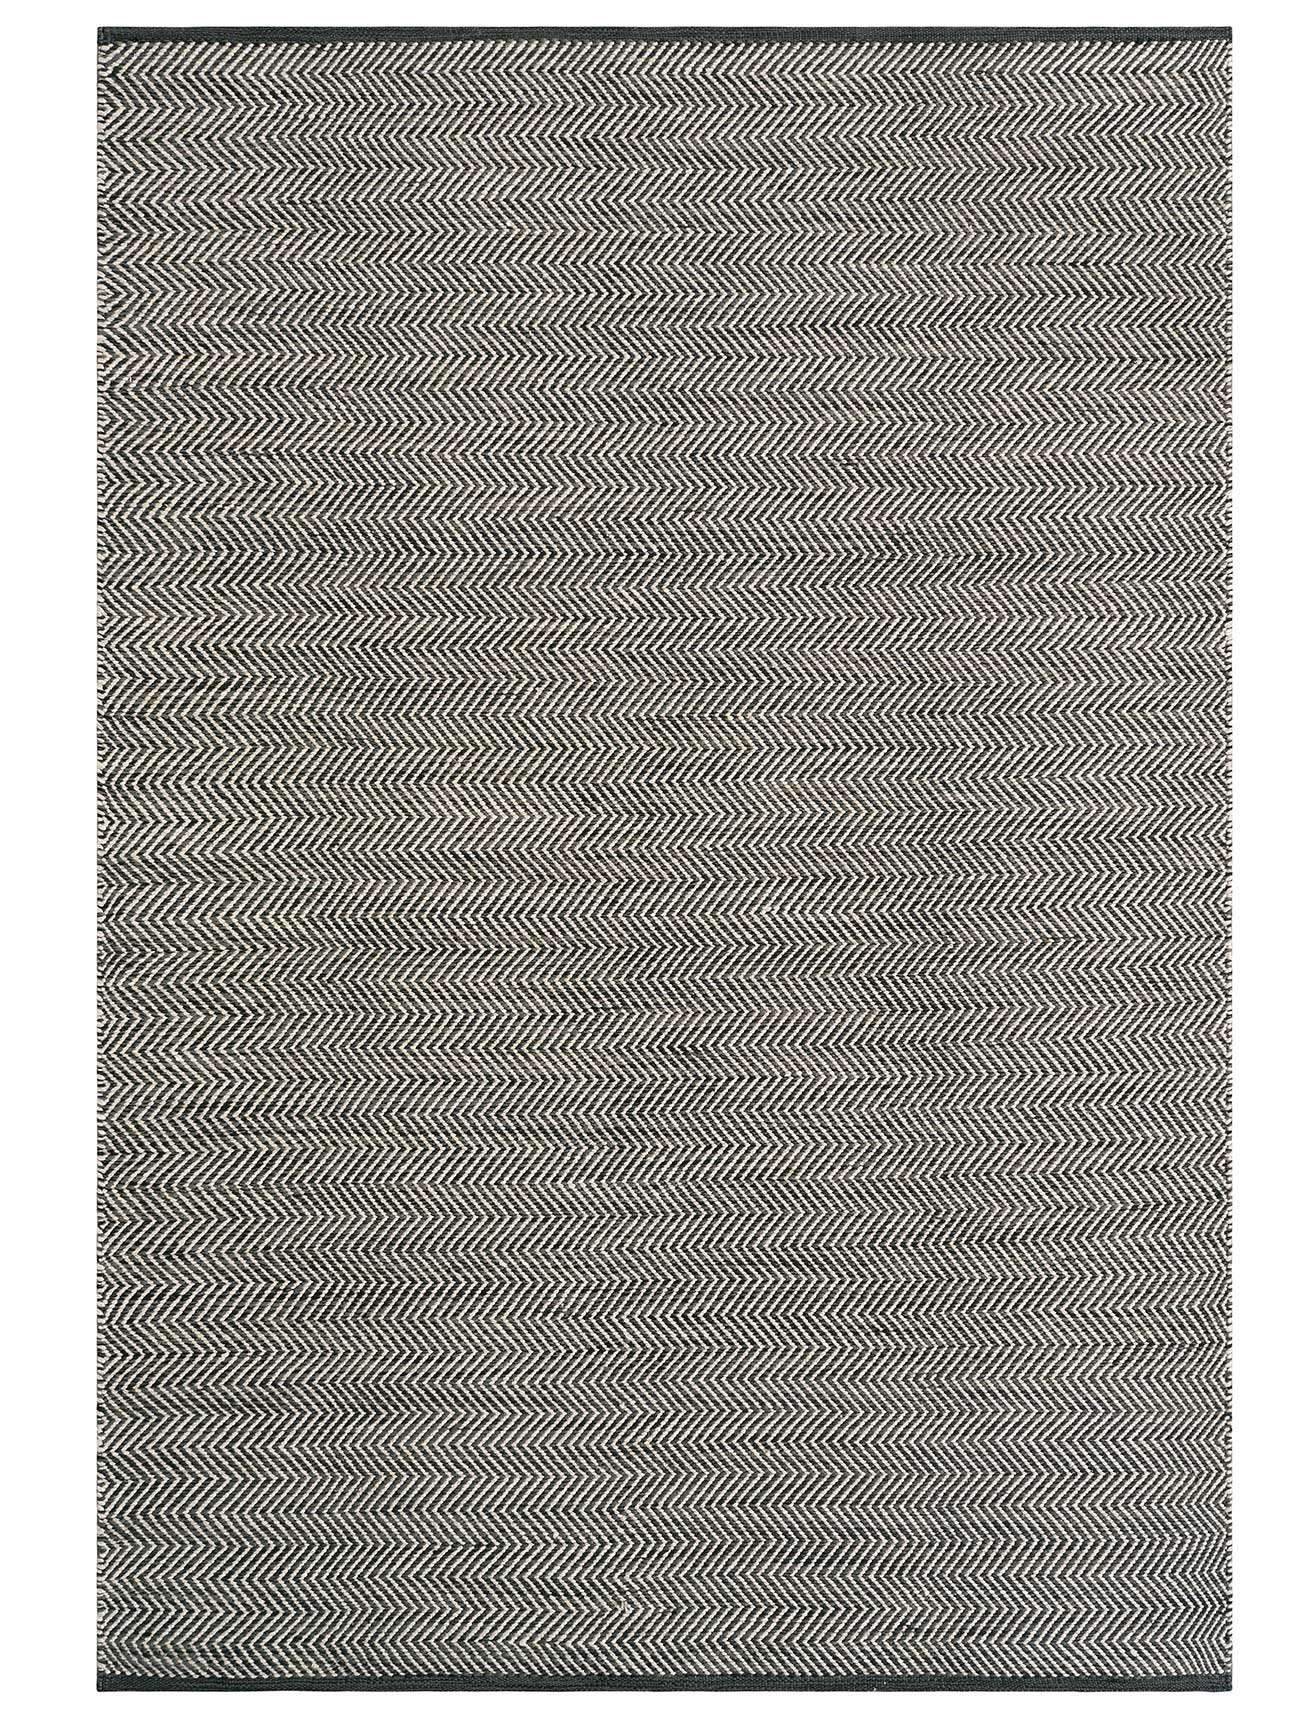 Basalt and Fog Quill - Armadillo Indoor Outdoor Rug